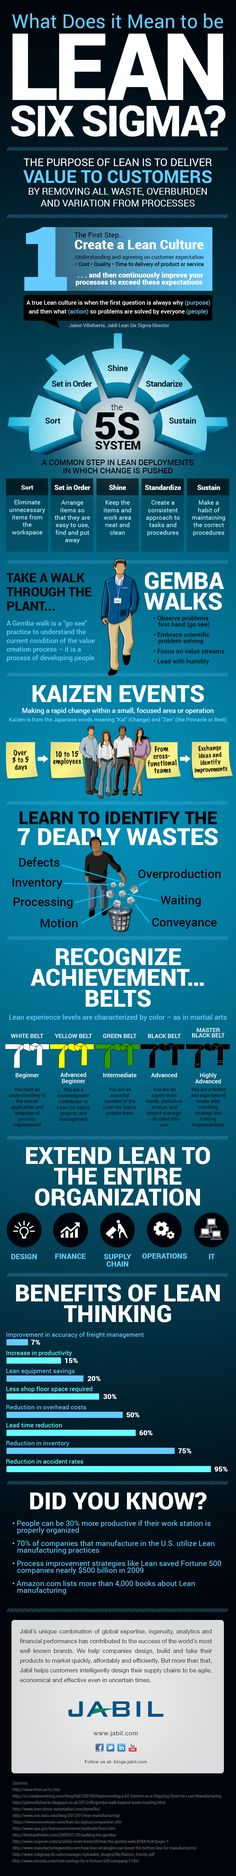 Lean Six Sigma Infographic